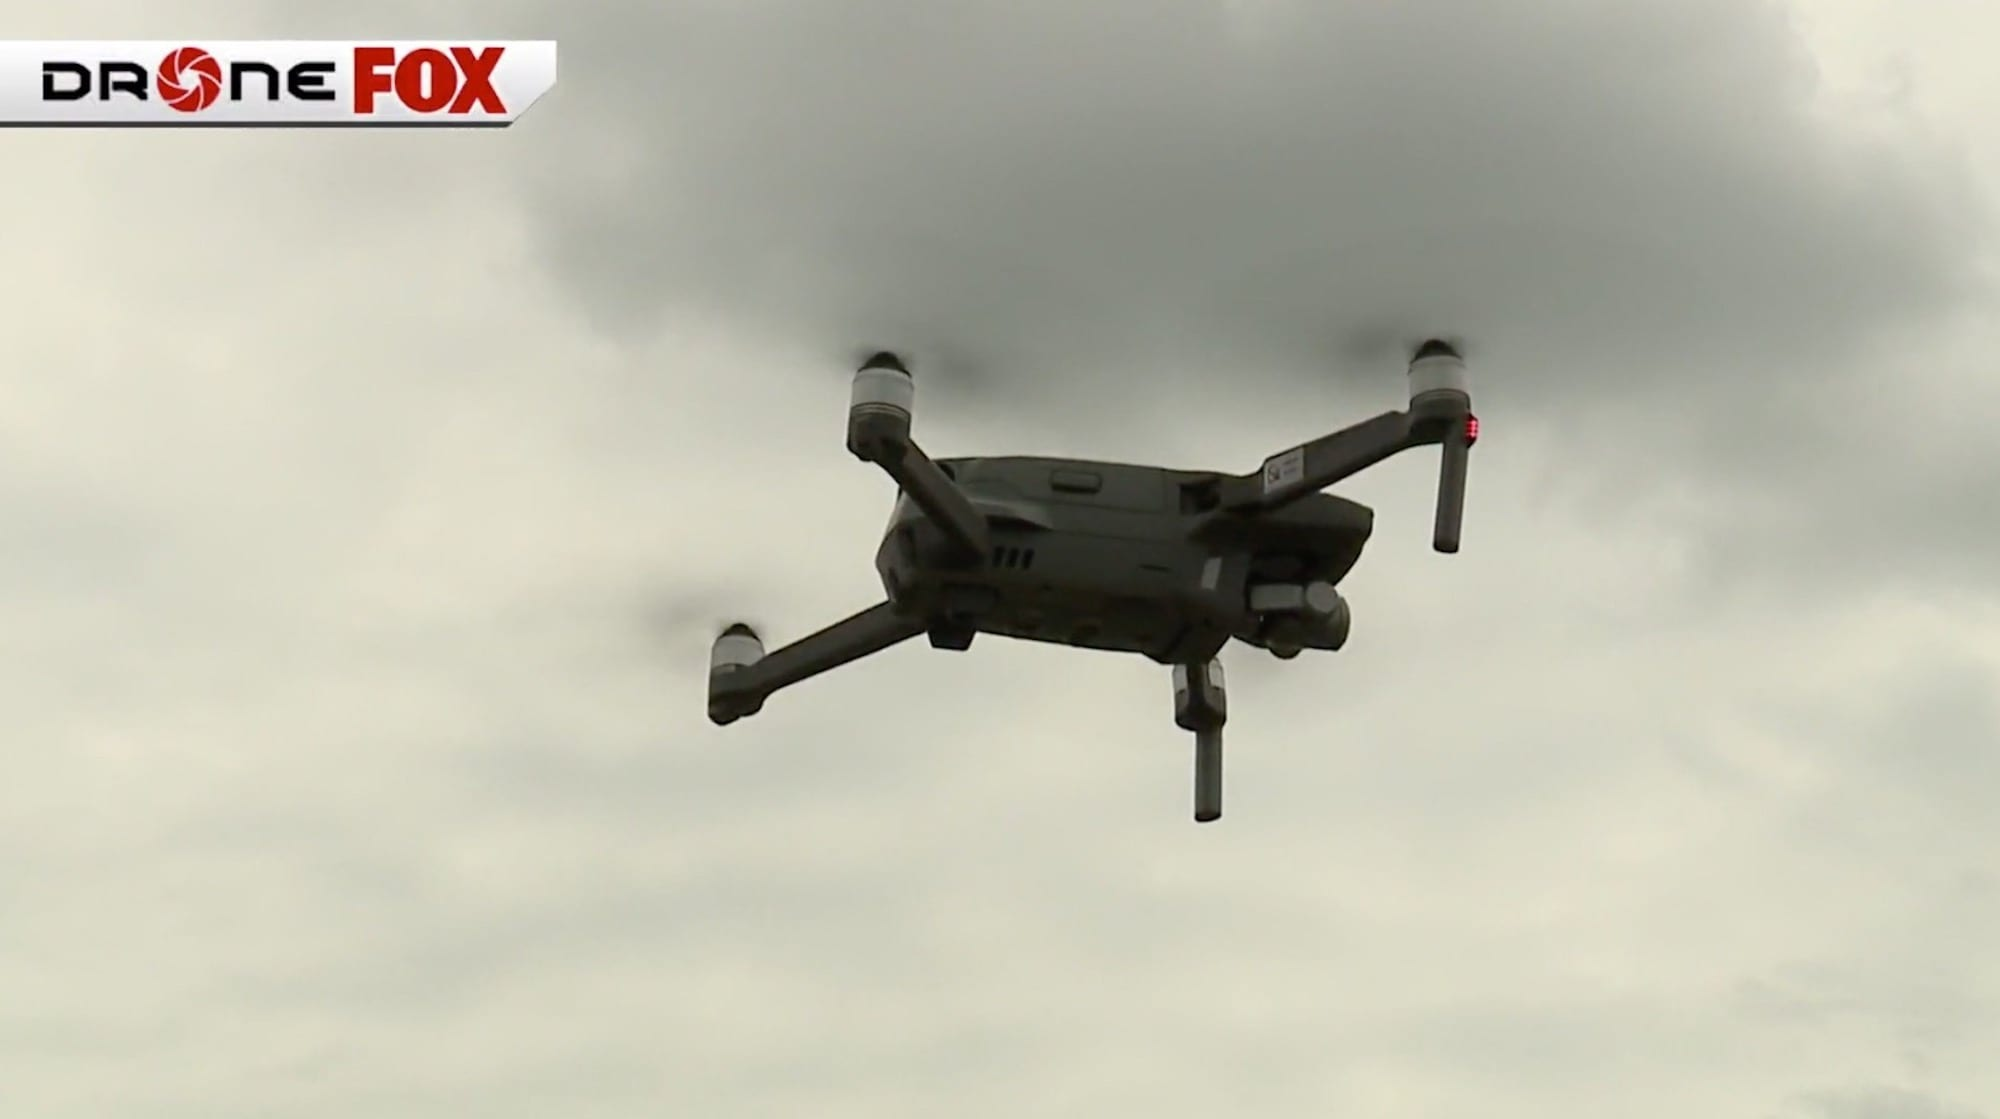 Smuggling contraband by drone into Mansfield prison in Ohio